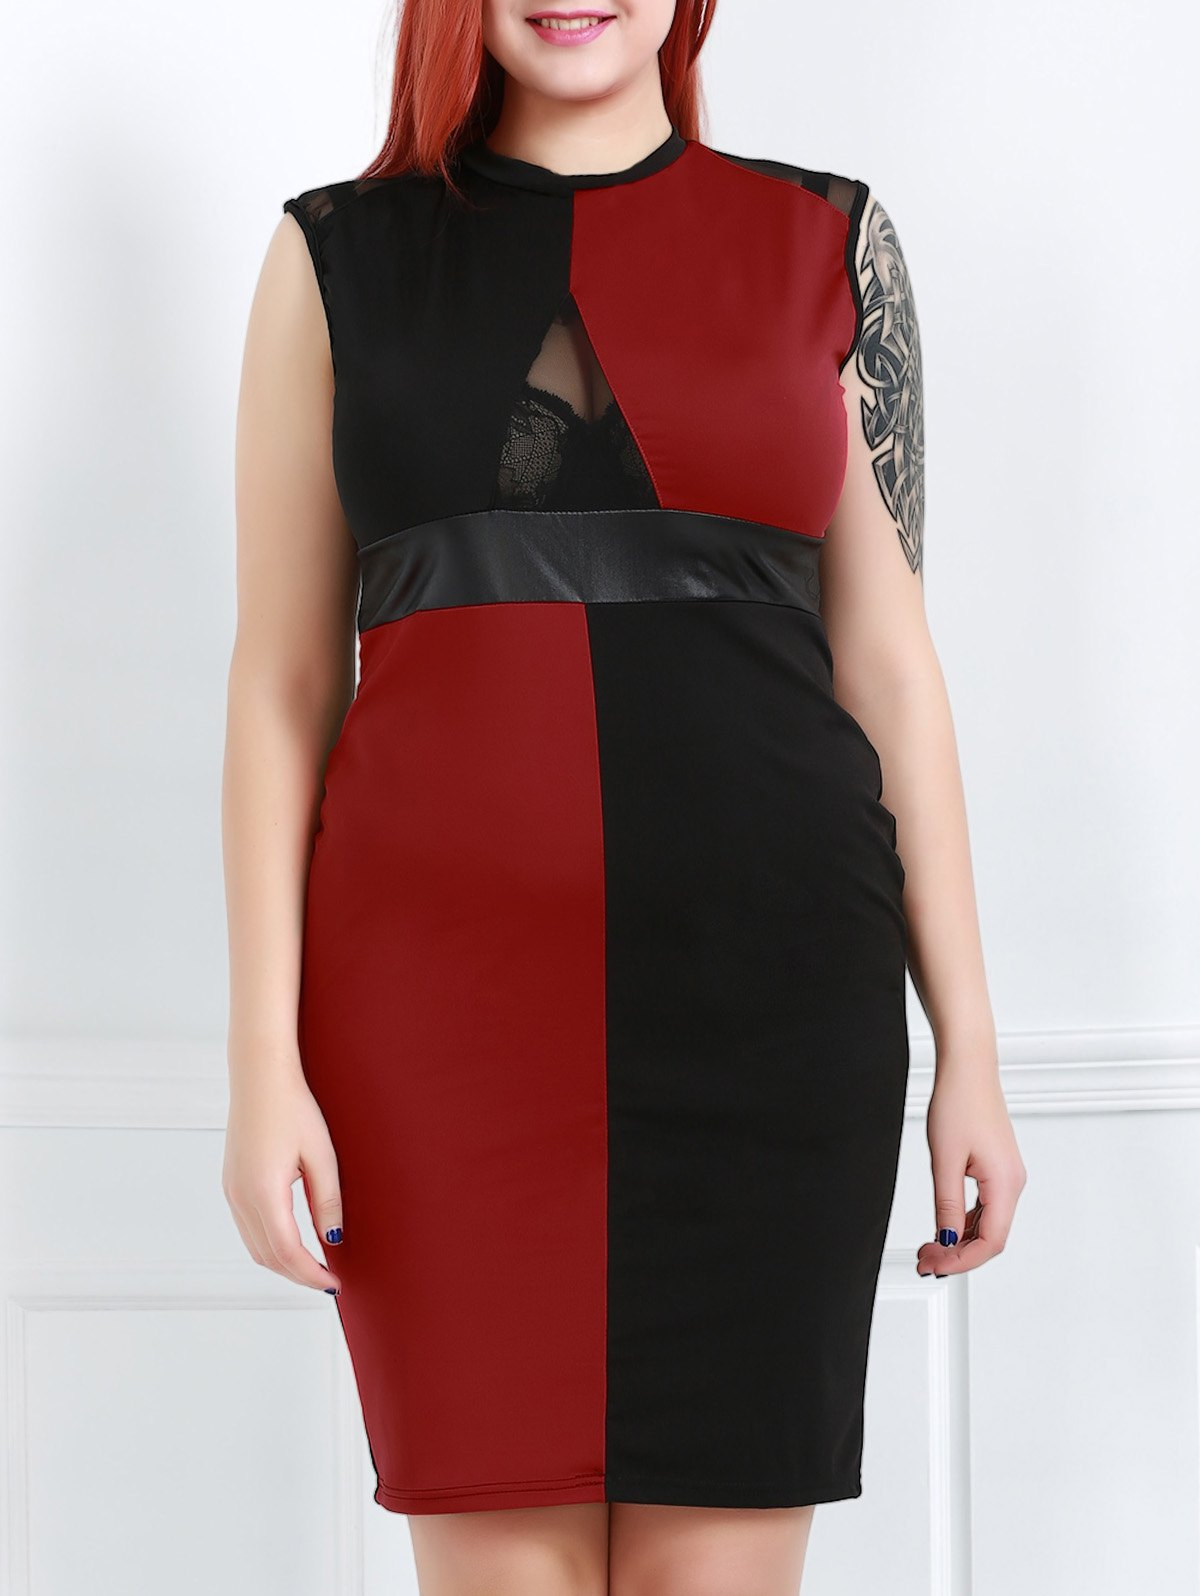 Sexy Round Neck Sleeveless Hit Color See-Through Women's Dress - RED/BLACK XL